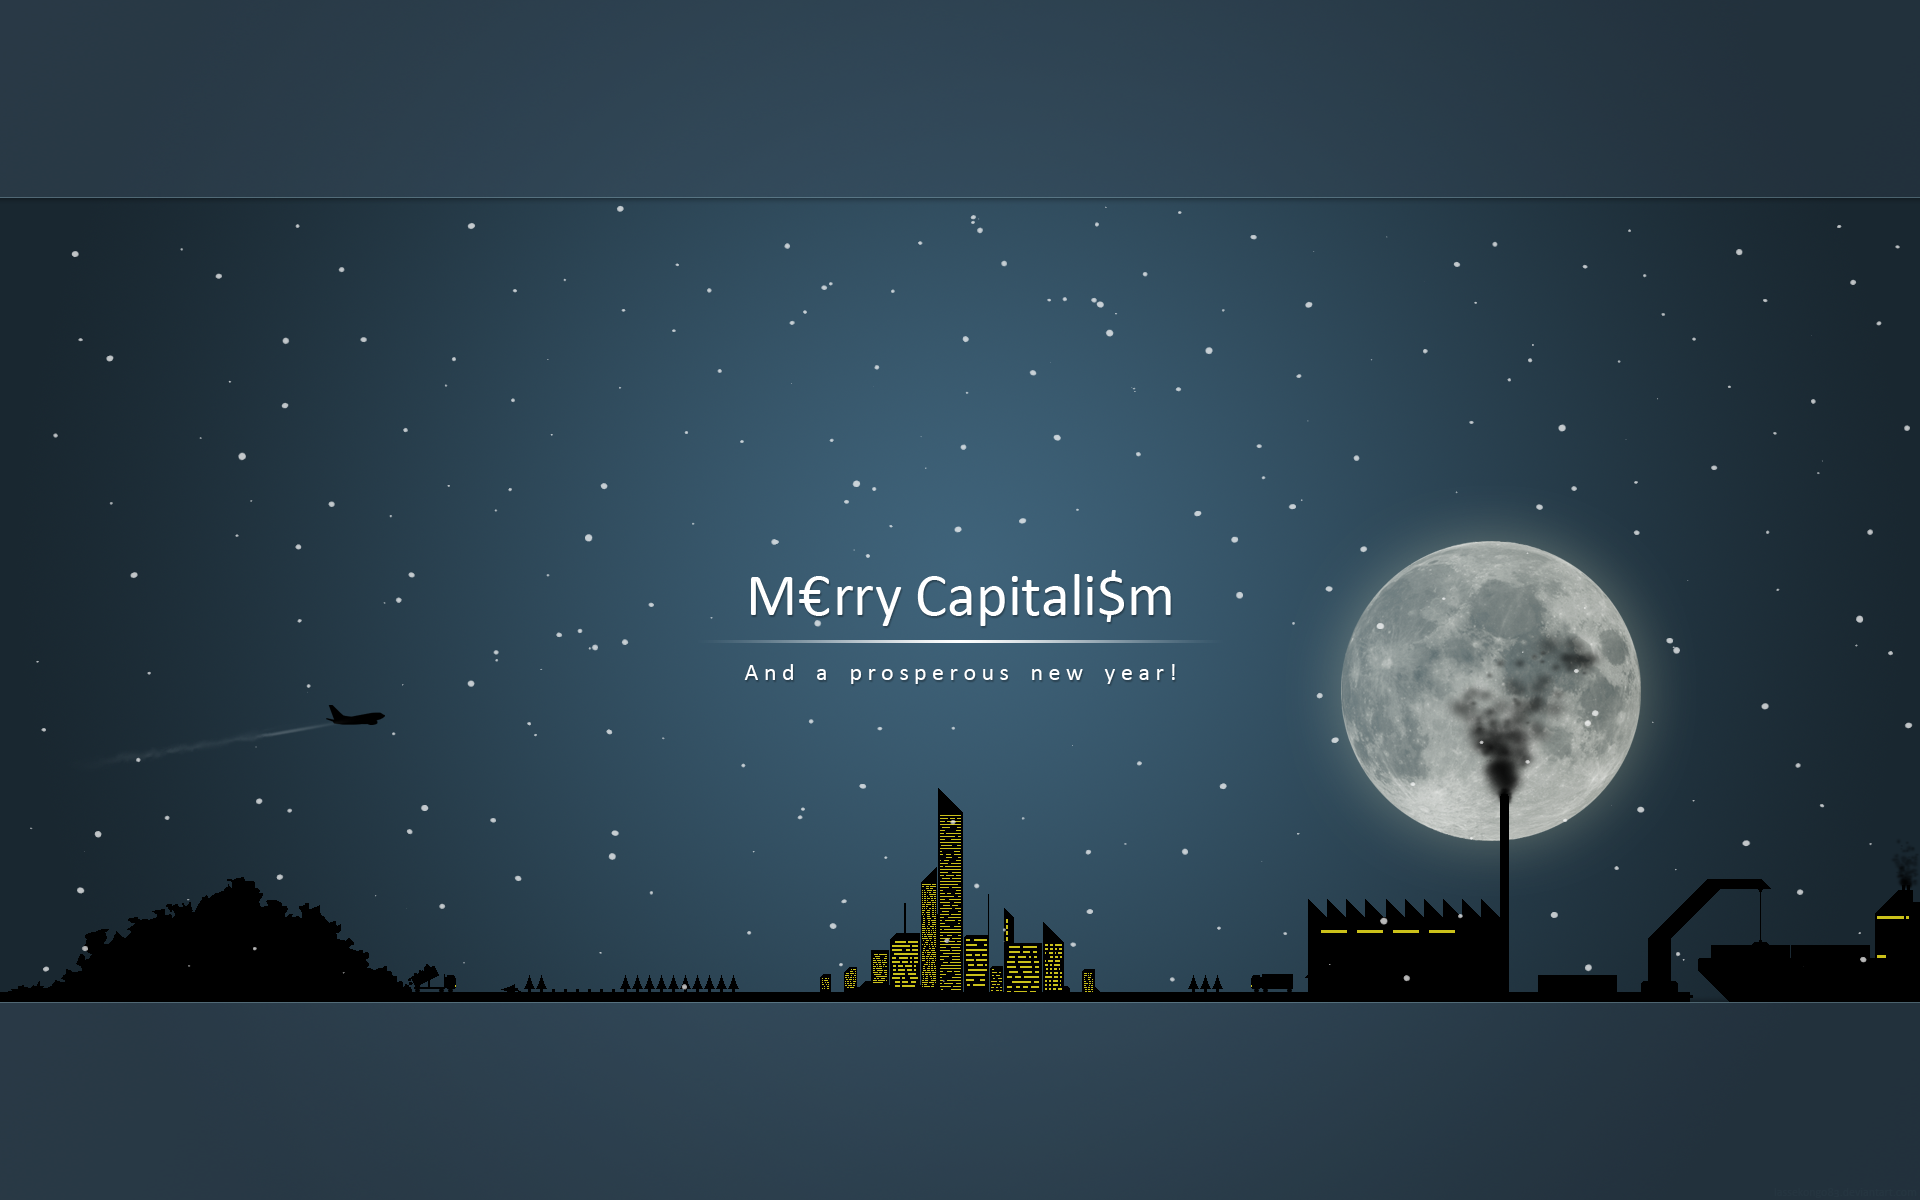 Merry Capitalism by lassekongo83